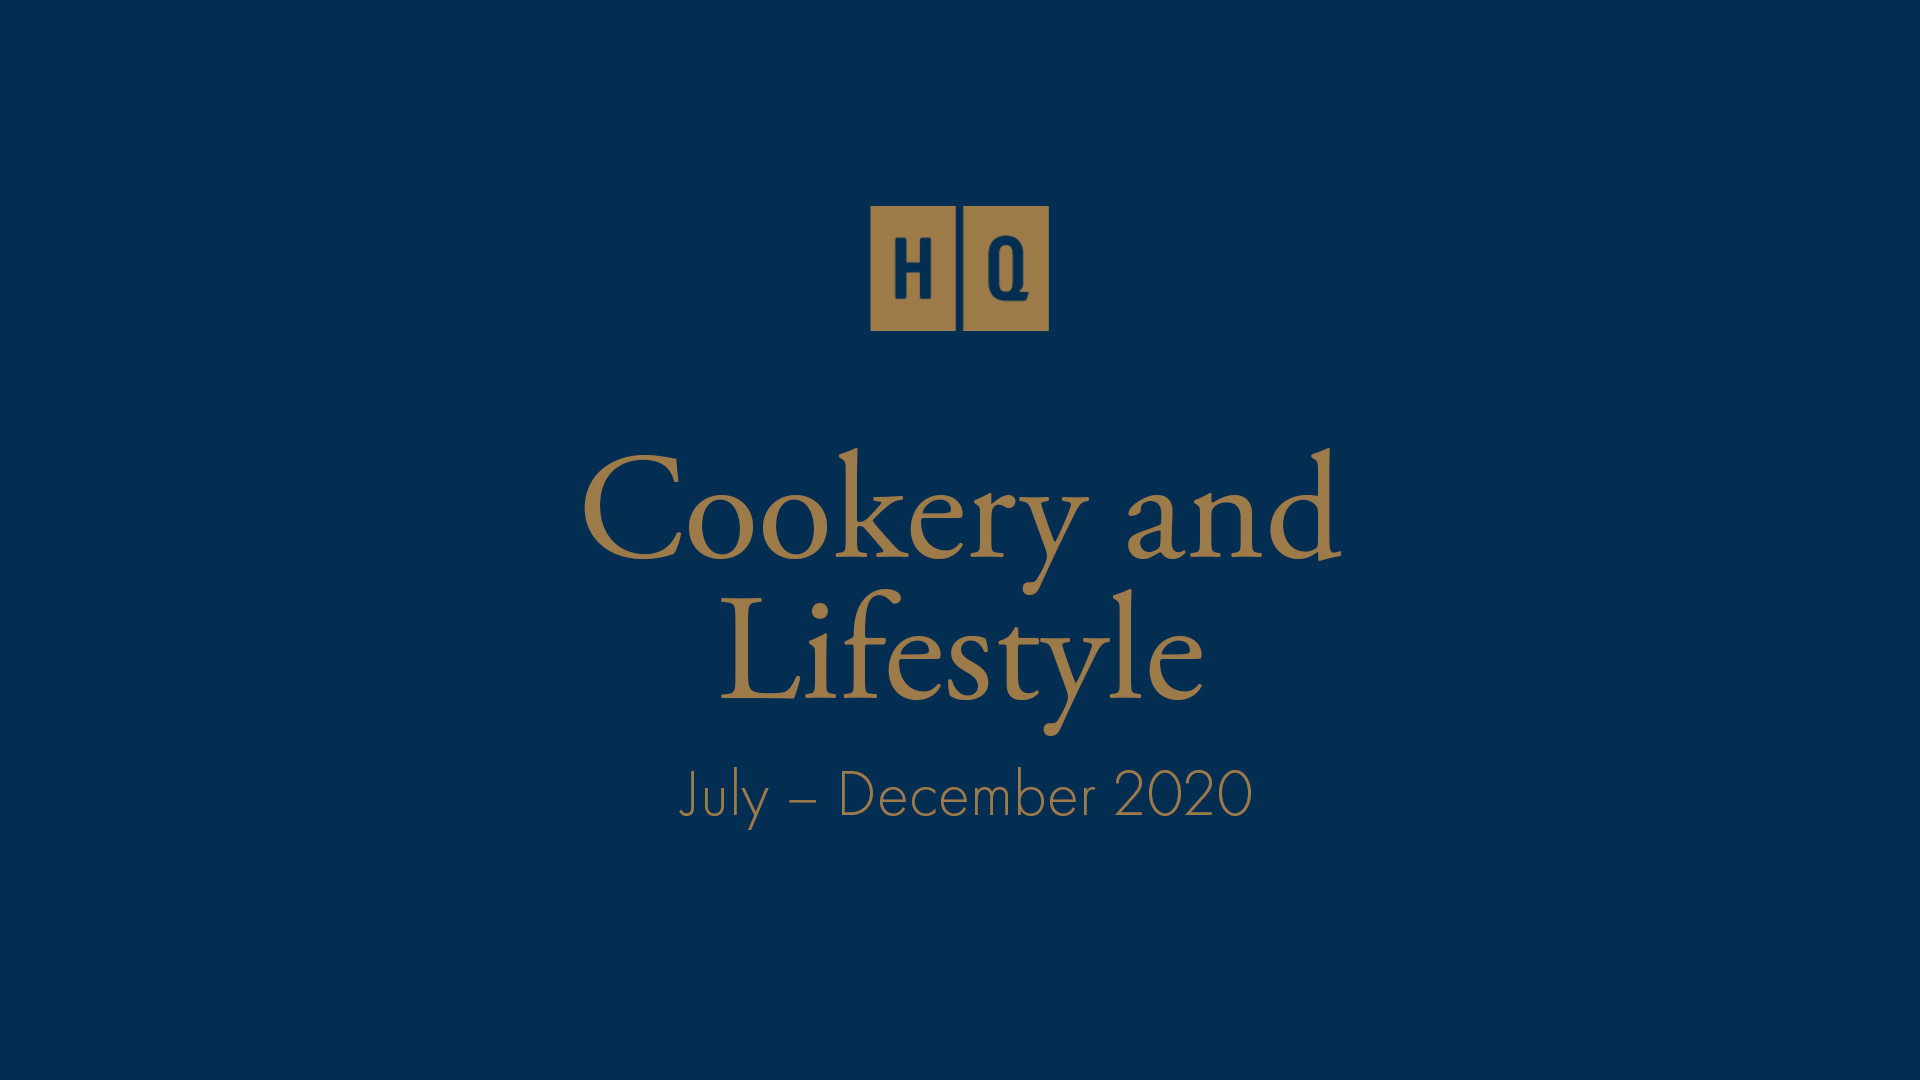 HQ Cookery and Lifestyle